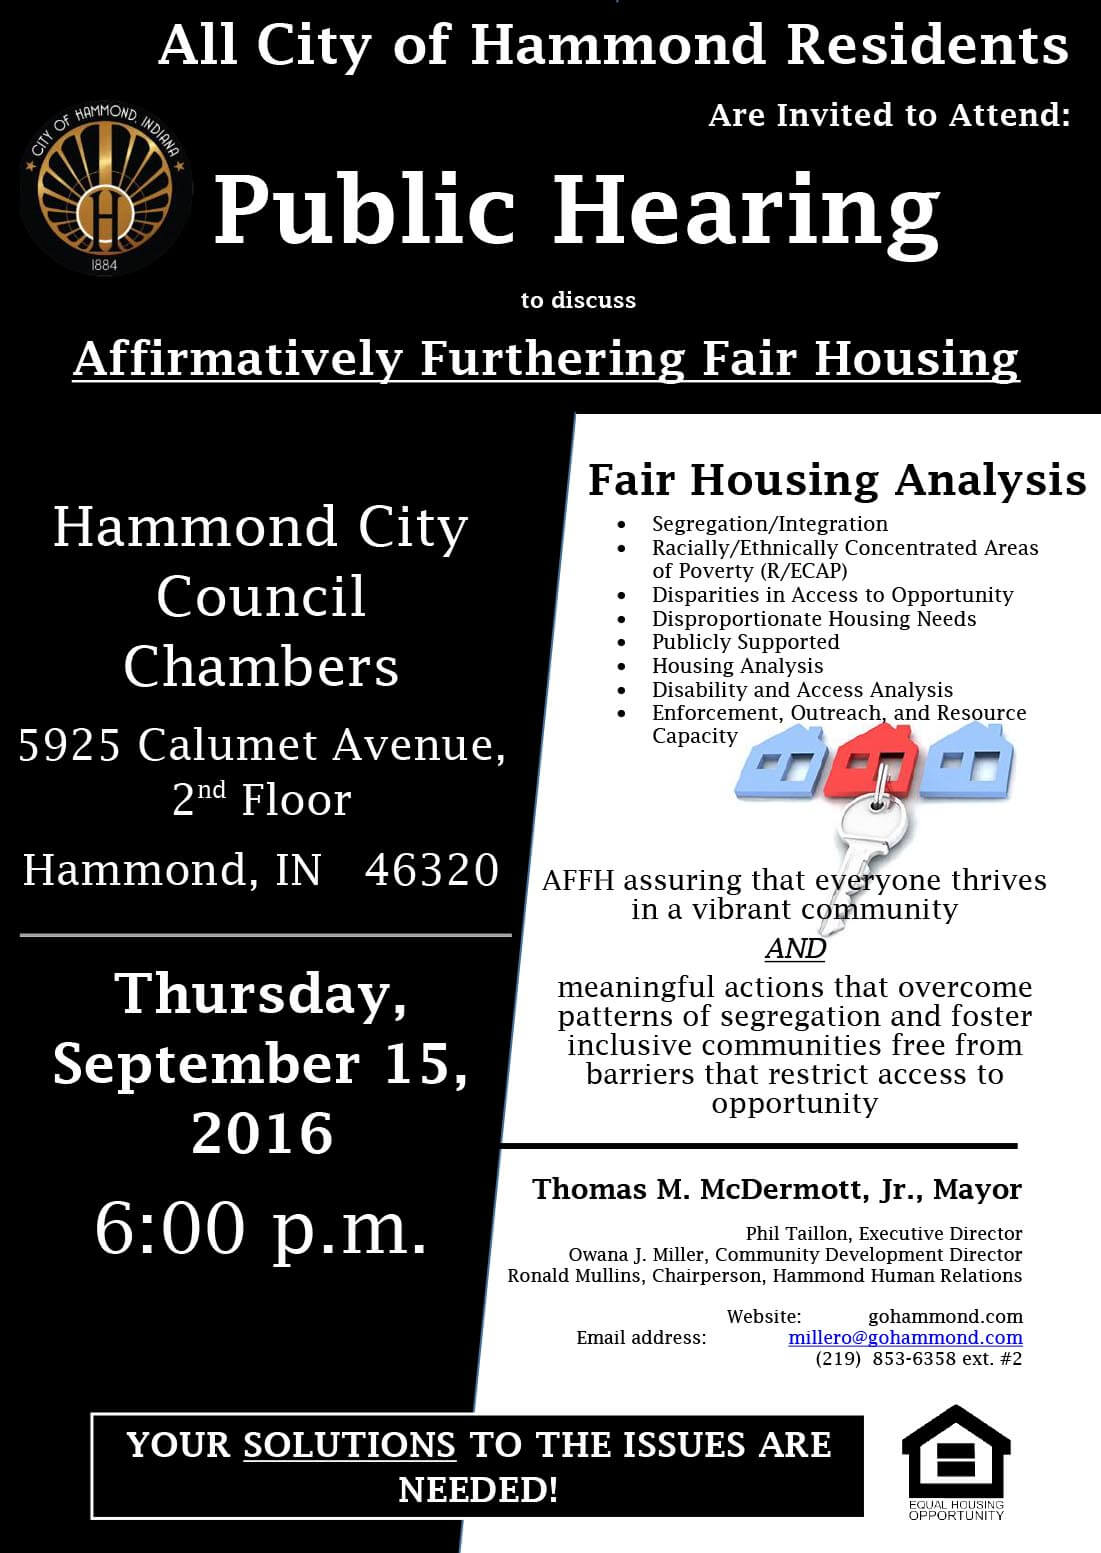 Public Hearings to discuss Affirmatively Furthering Fair Housing